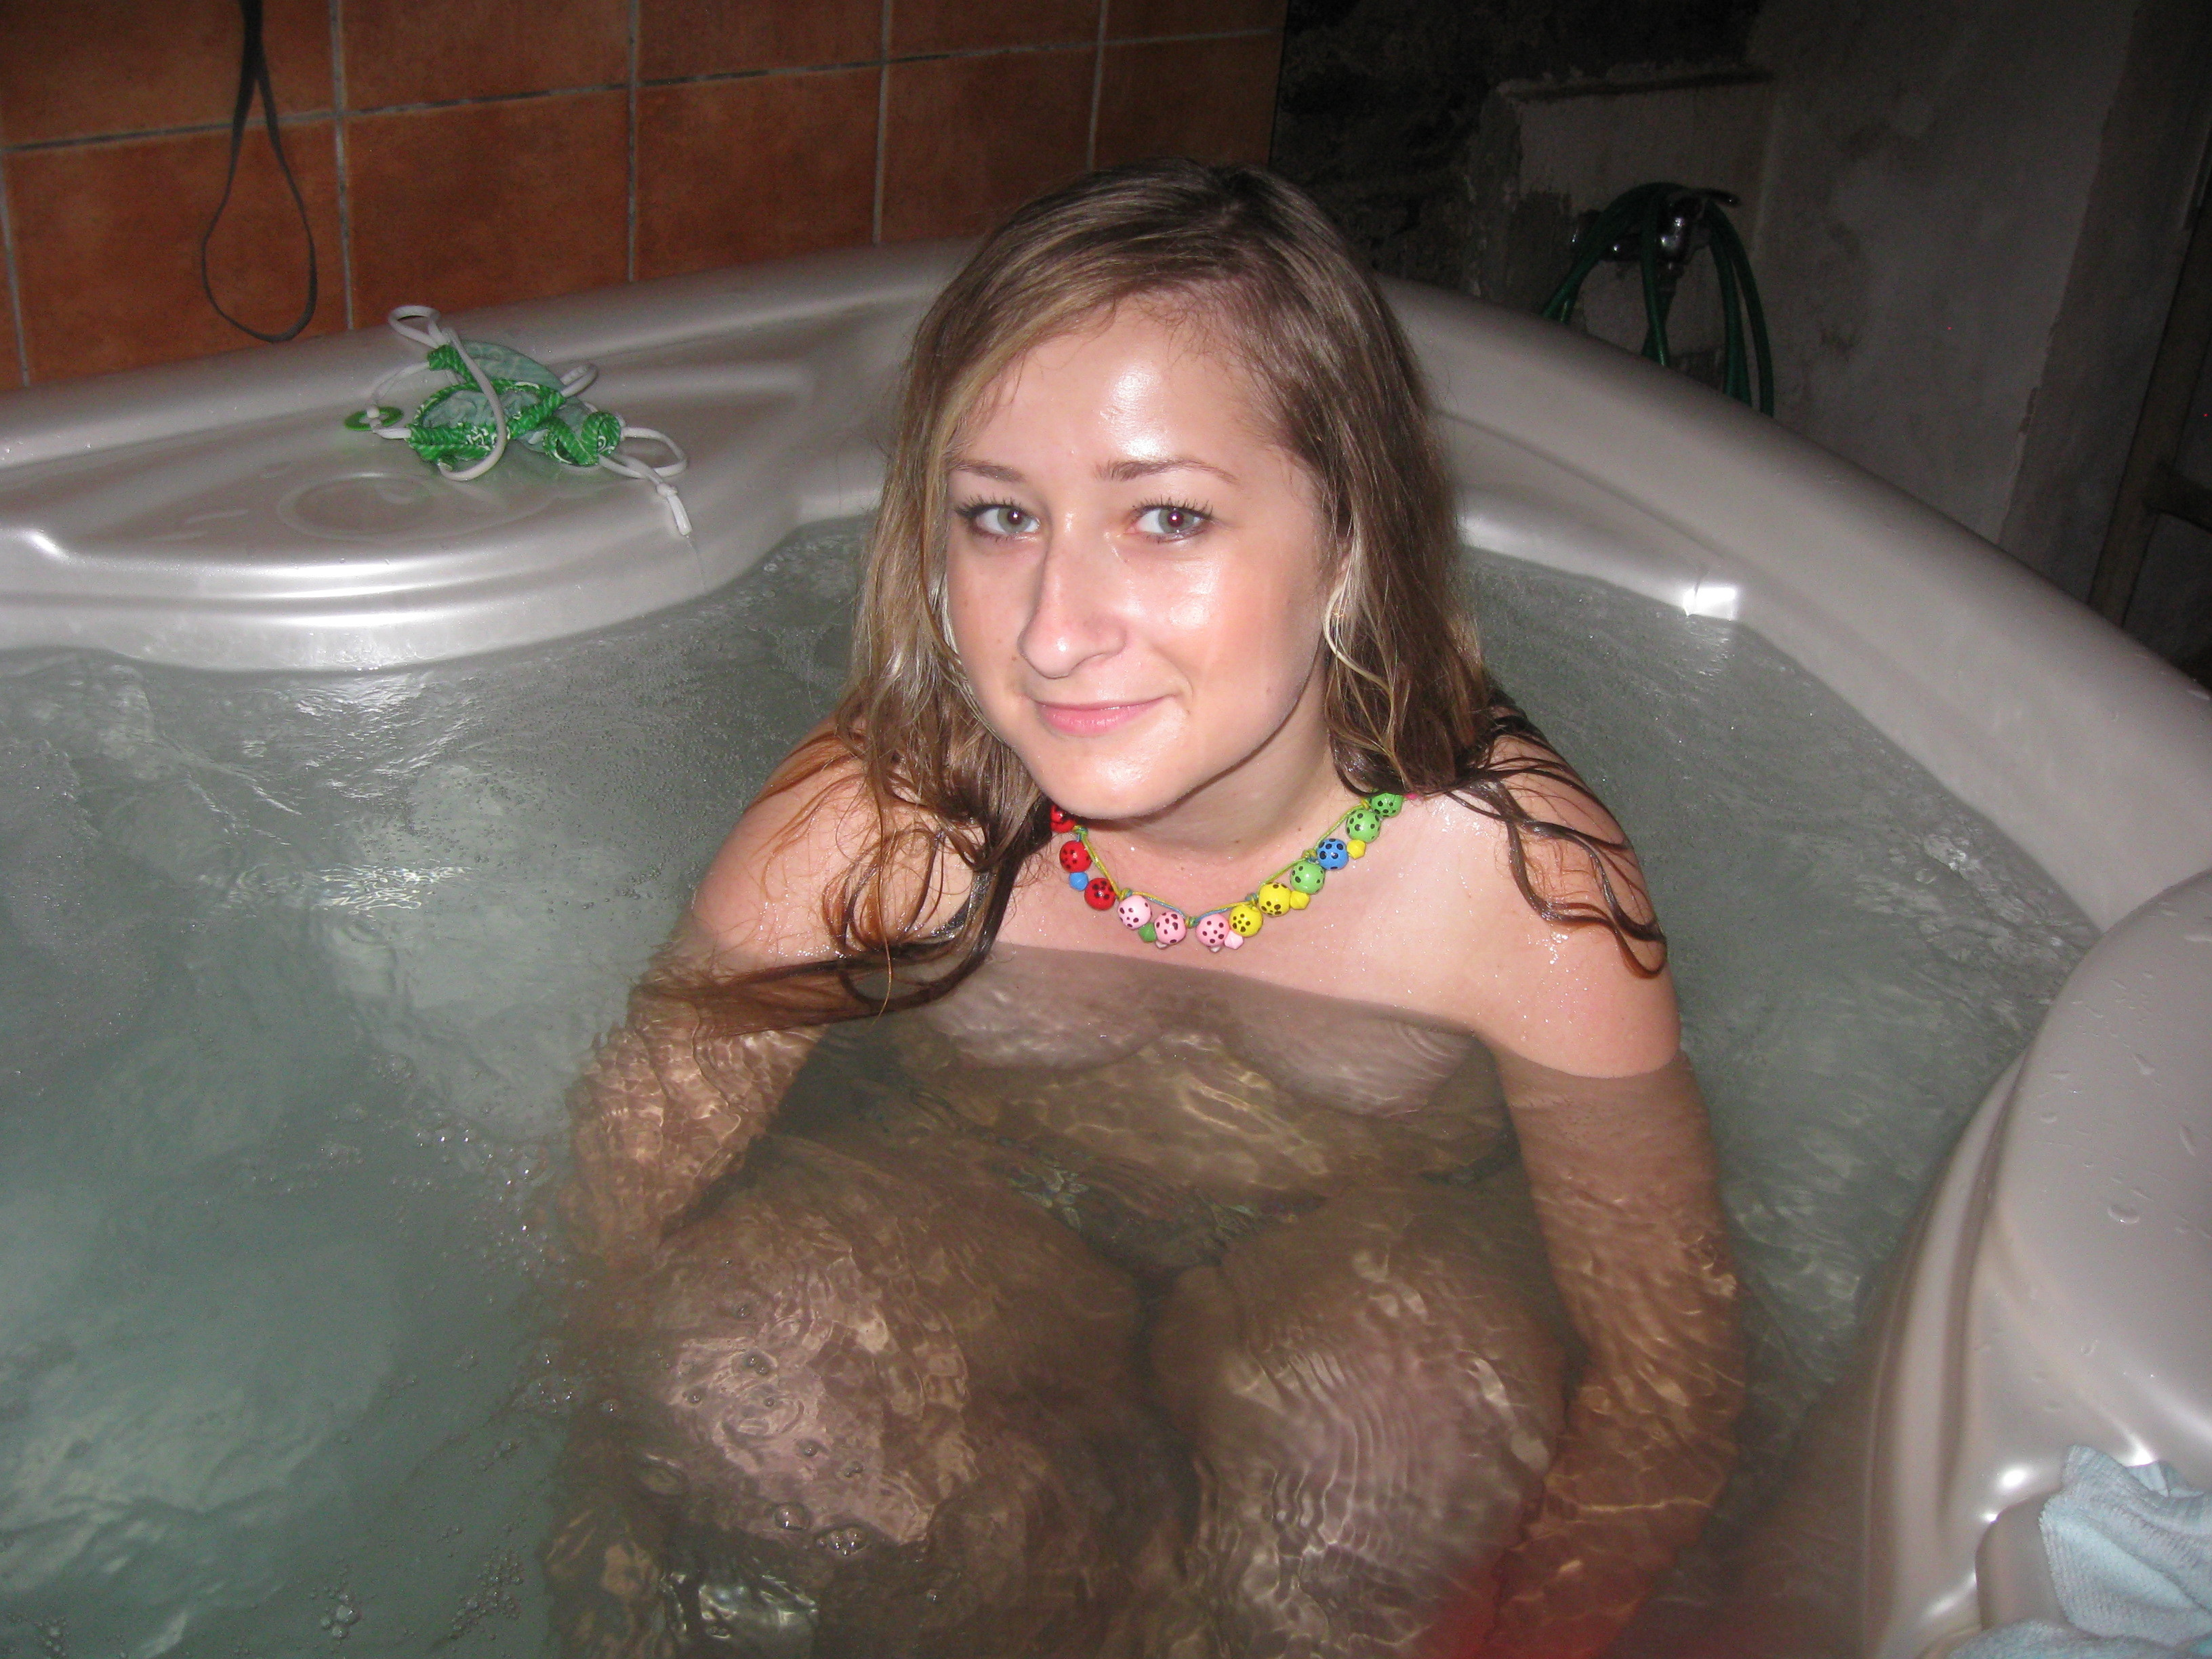 That would hot wife naked tub think, that you